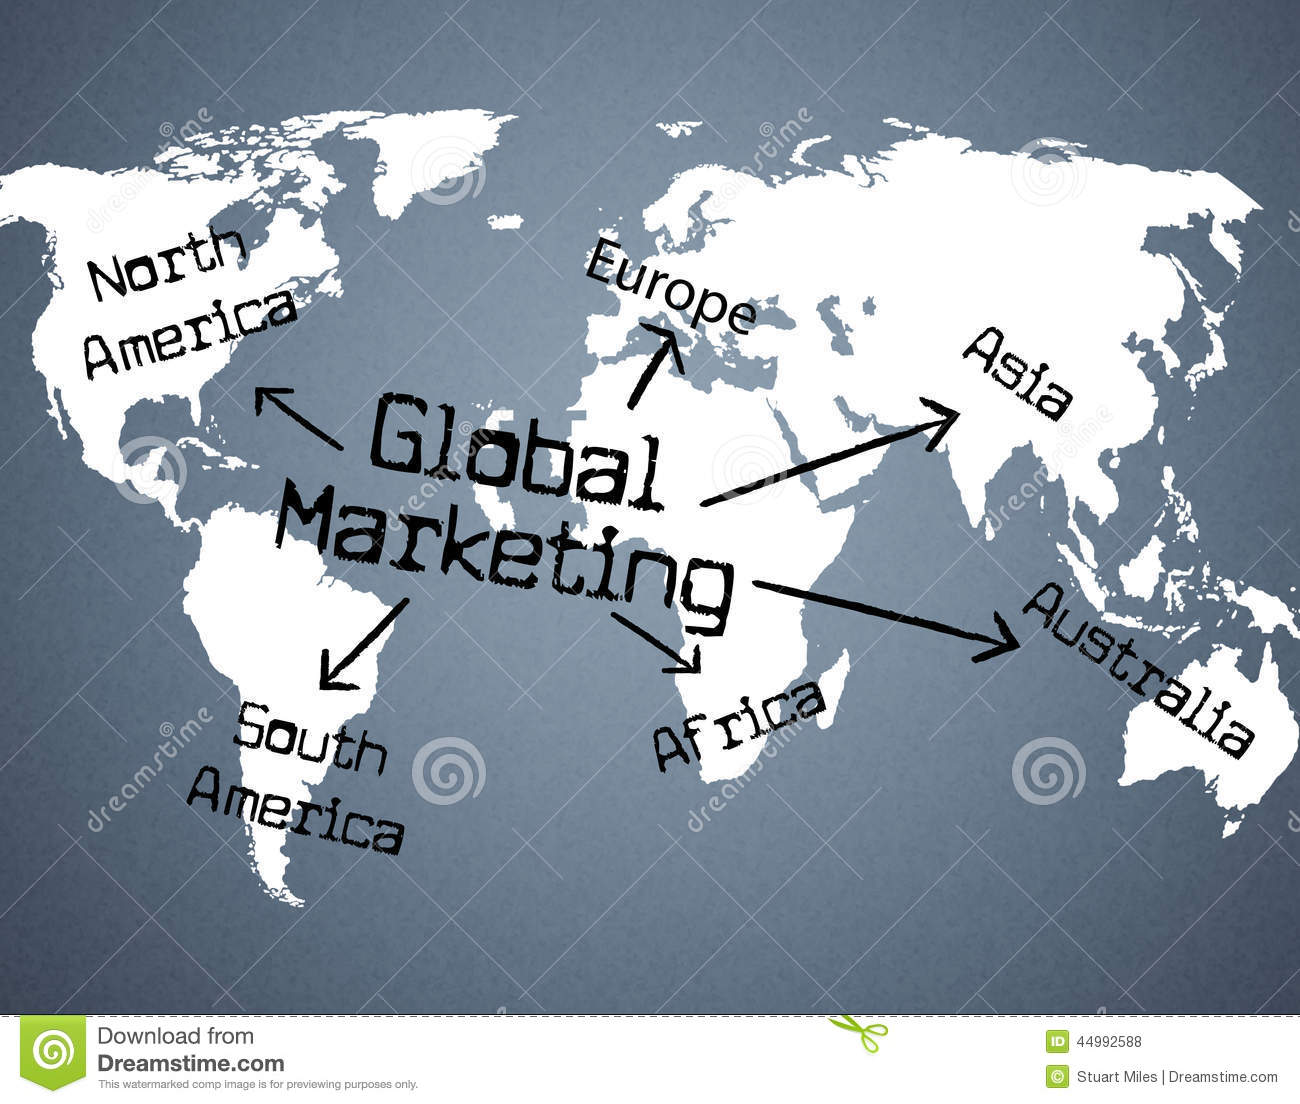 marketing time globalization Economic, cultural, and political pros and cons of globalization history of globalization discover implications and arguments in favor and against it.